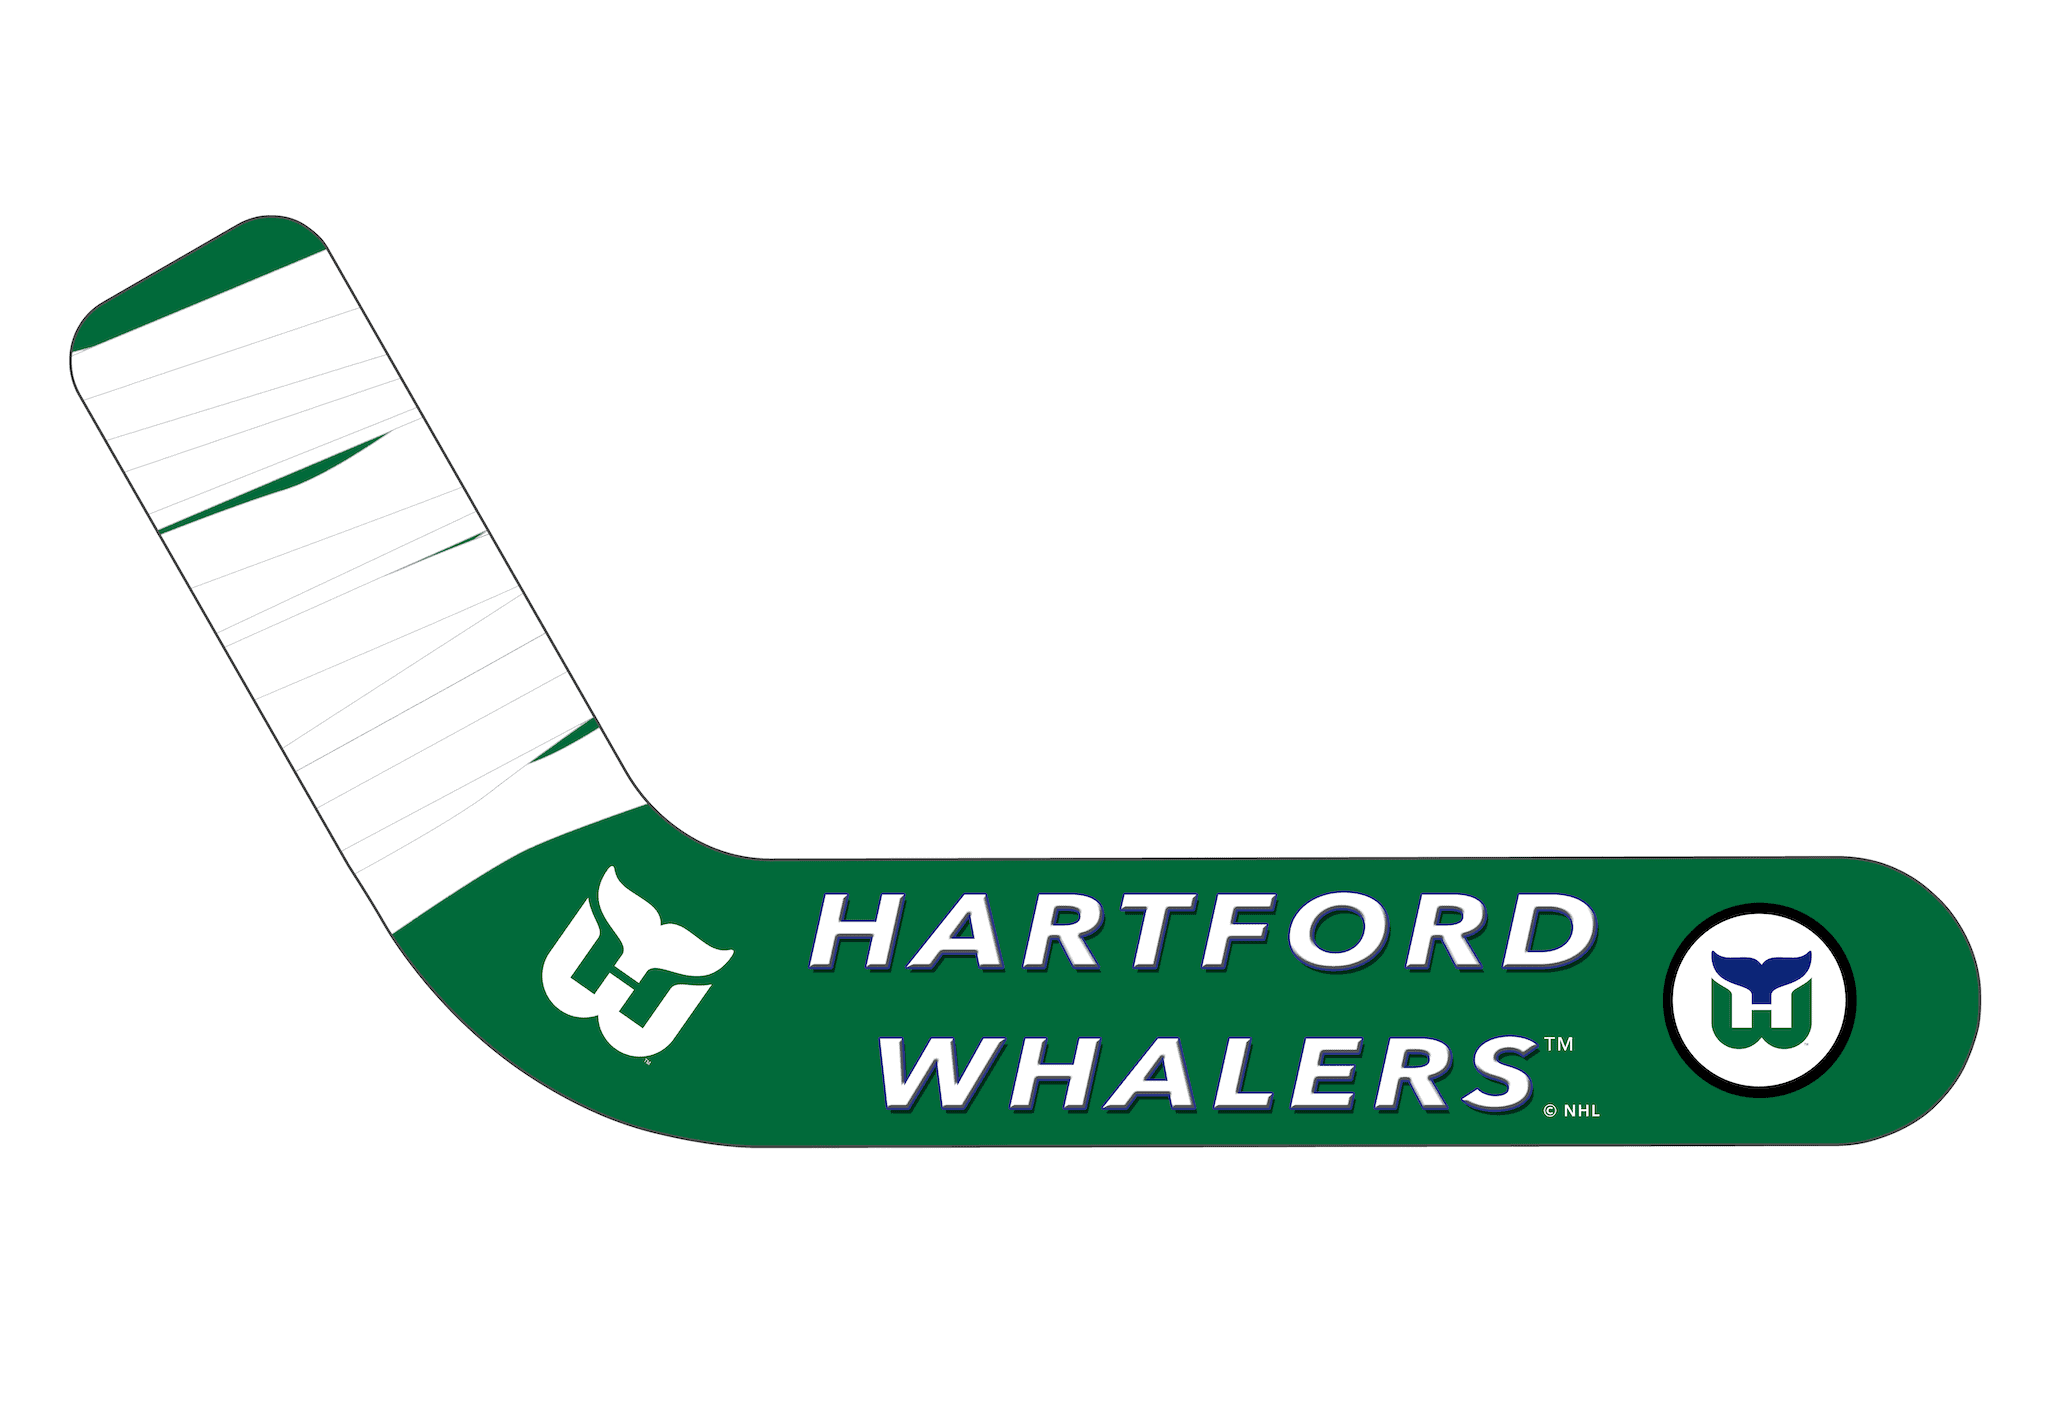 Vintage Hartford Whalers 1979-92 - Ultimate Hockey Ceiling Fans